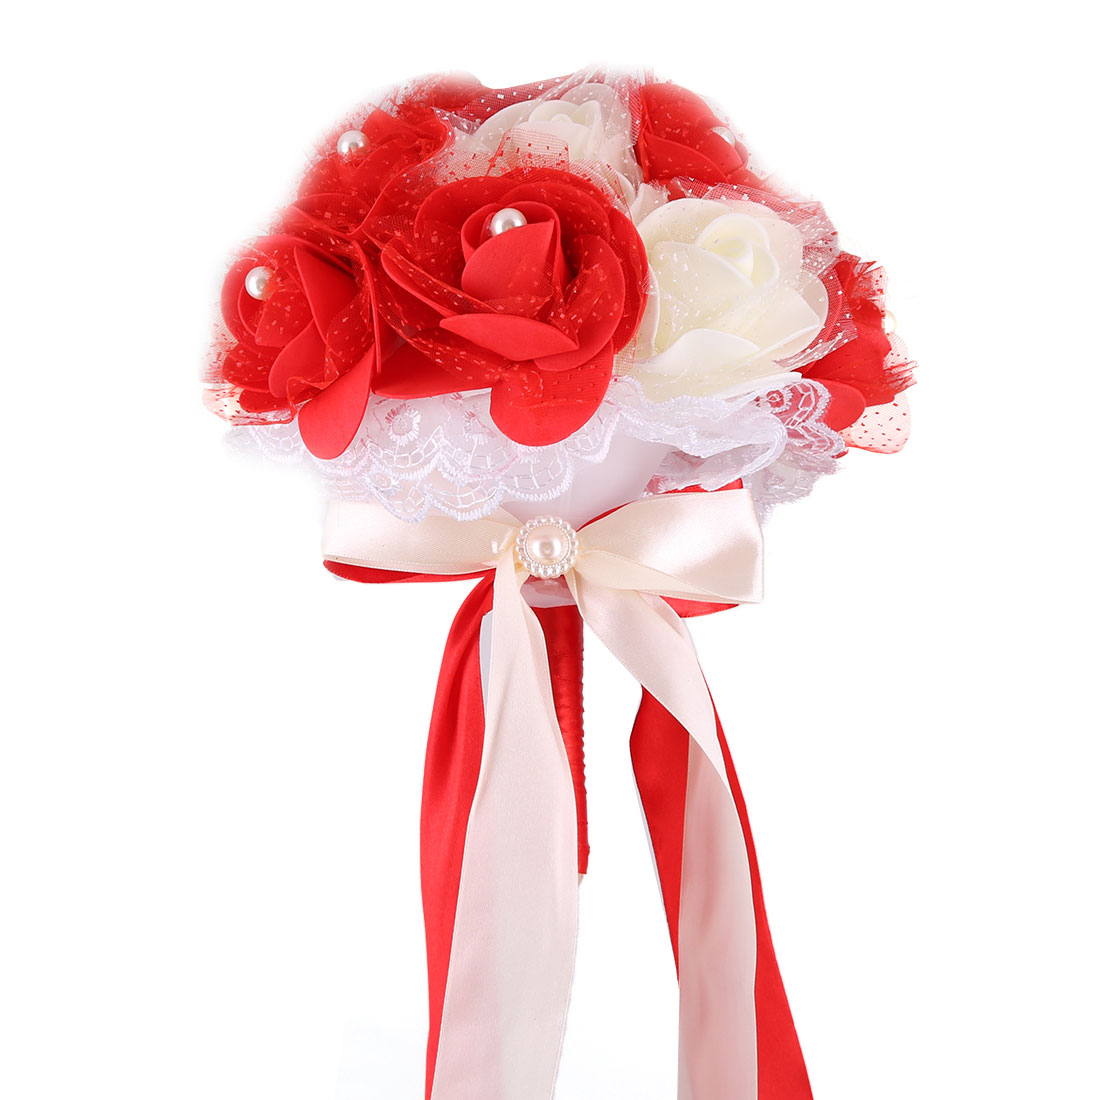 Wedding Bridal Foam Rose Buds Handhold Bouquet Craft Ornament Red 9 Inch Dia